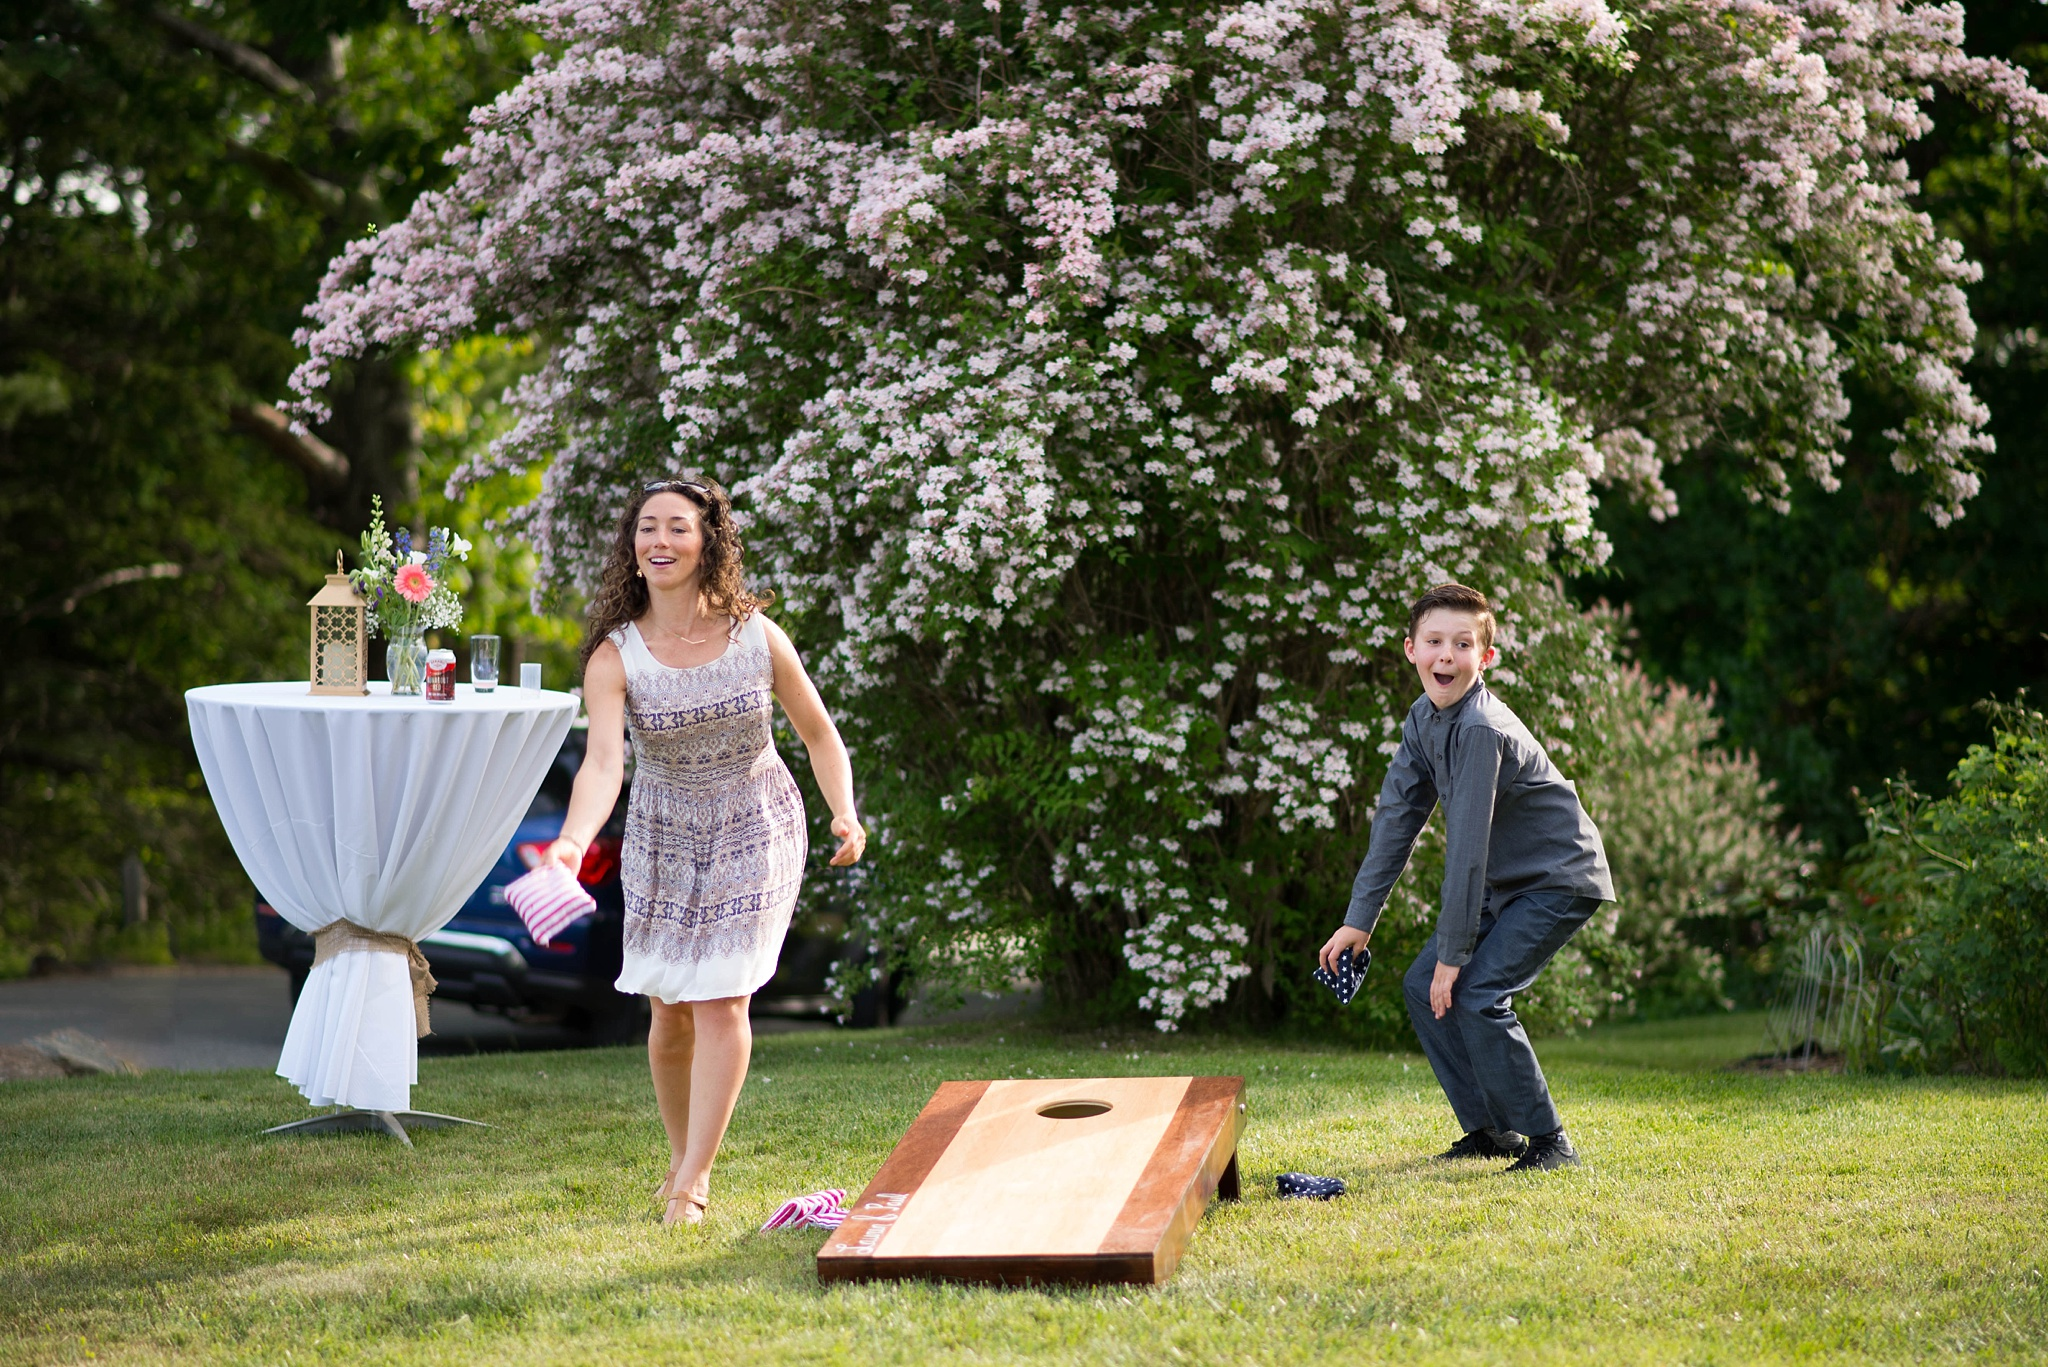 horse shoes at a wedding